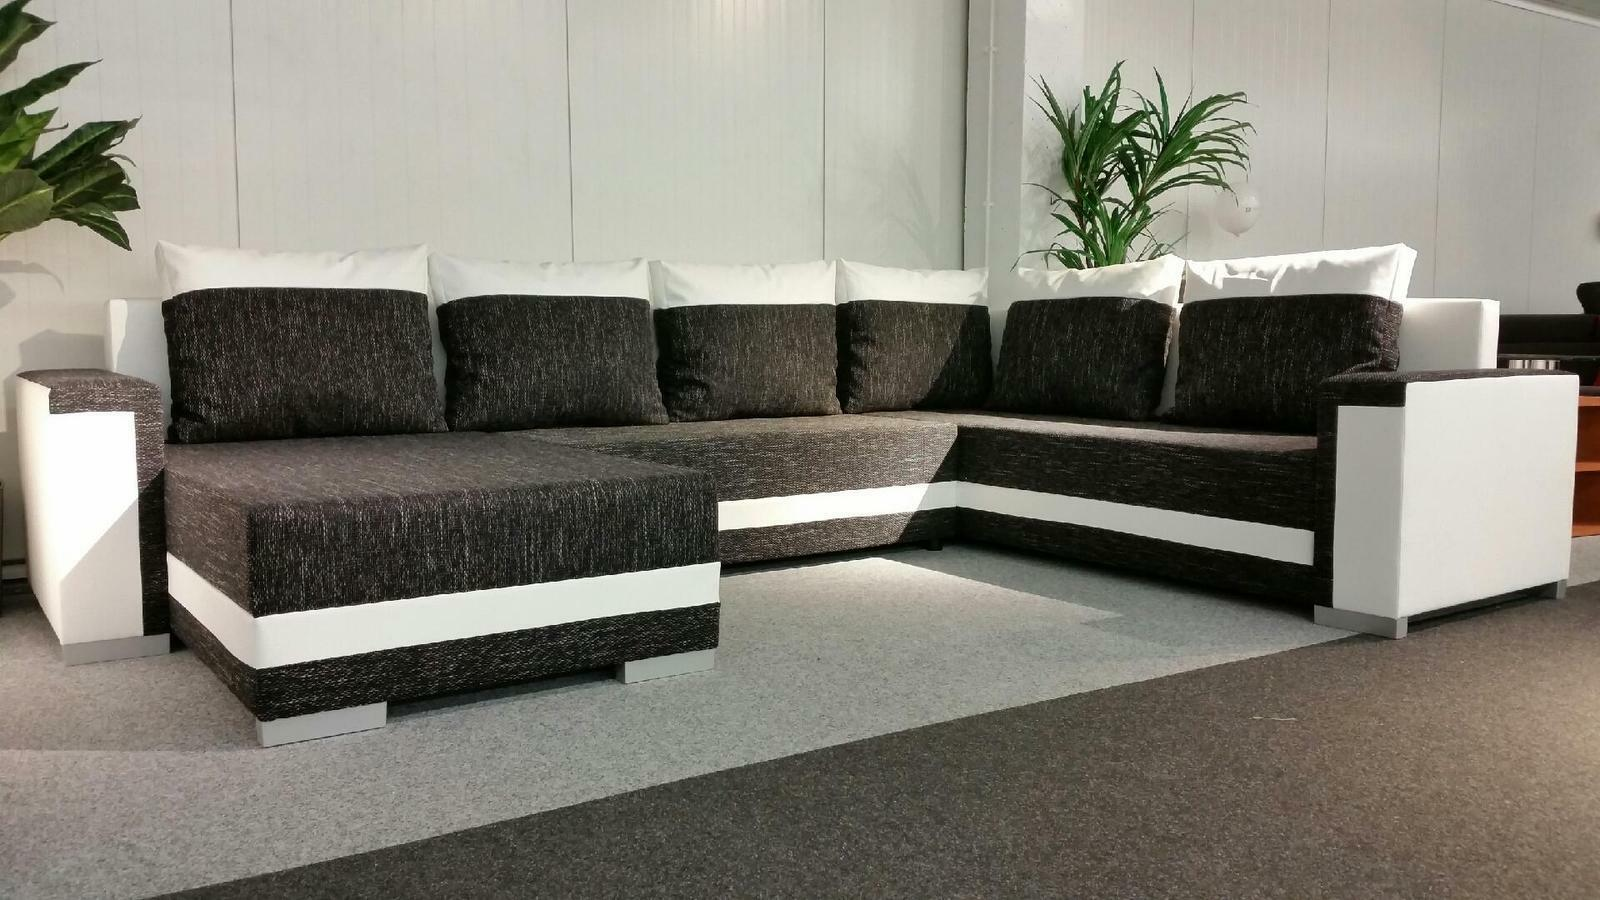 couch couchgarnitur tunis u sofagarnitur sofa. Black Bedroom Furniture Sets. Home Design Ideas